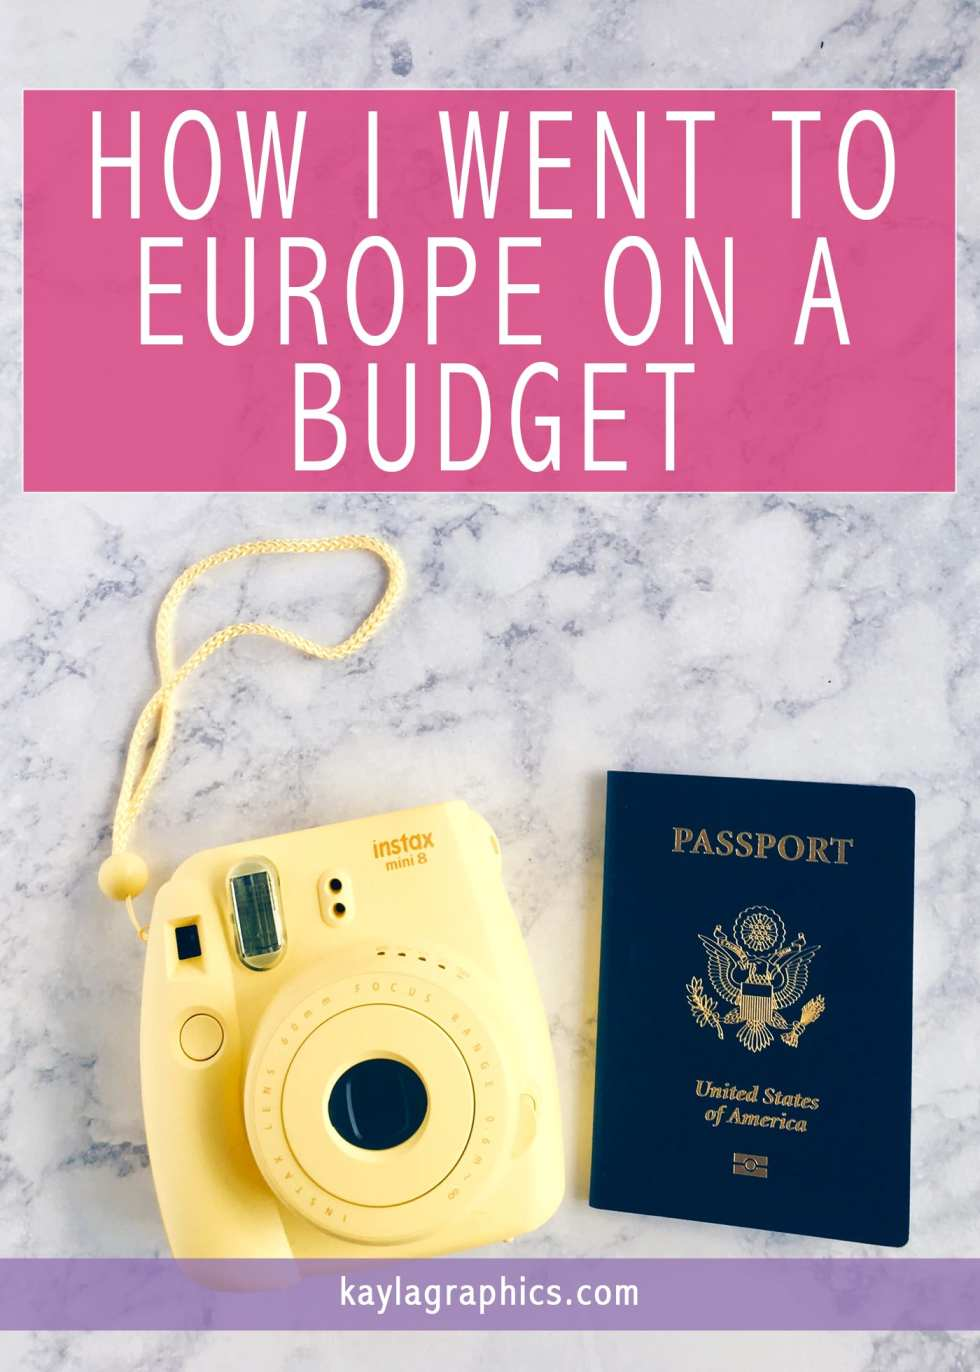 How I Went to Europe on a Budget